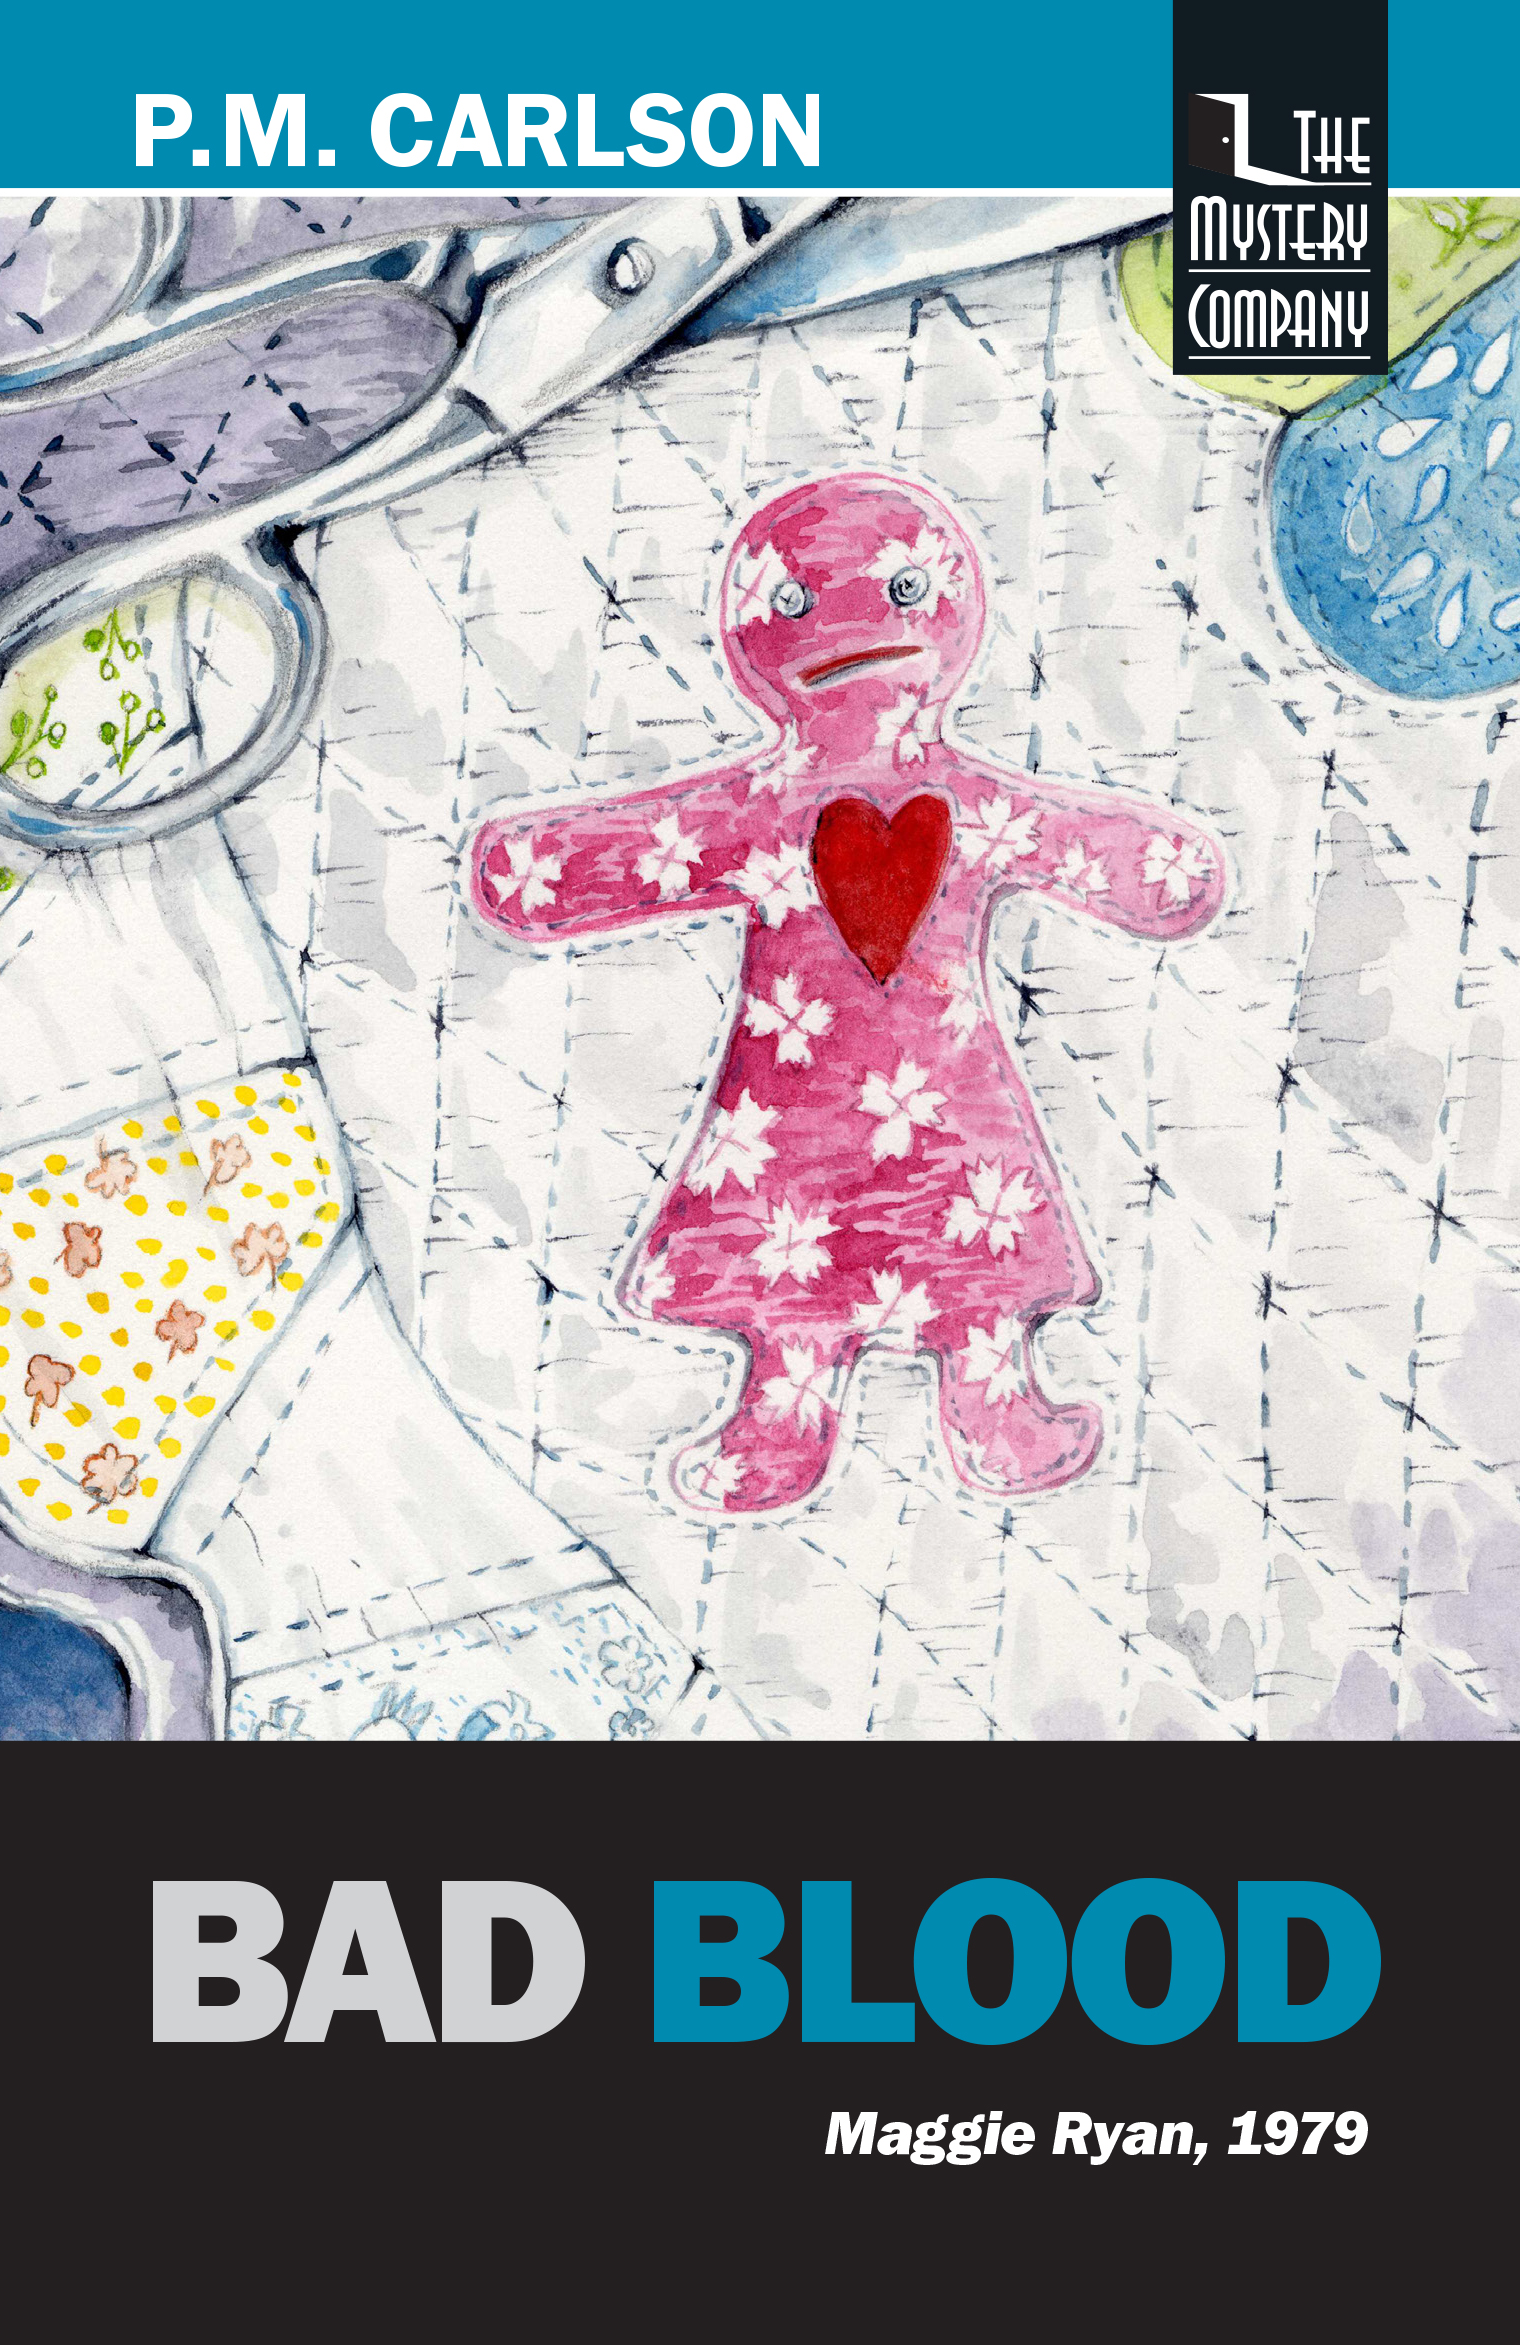 Bad Blood by P.M. Carlson